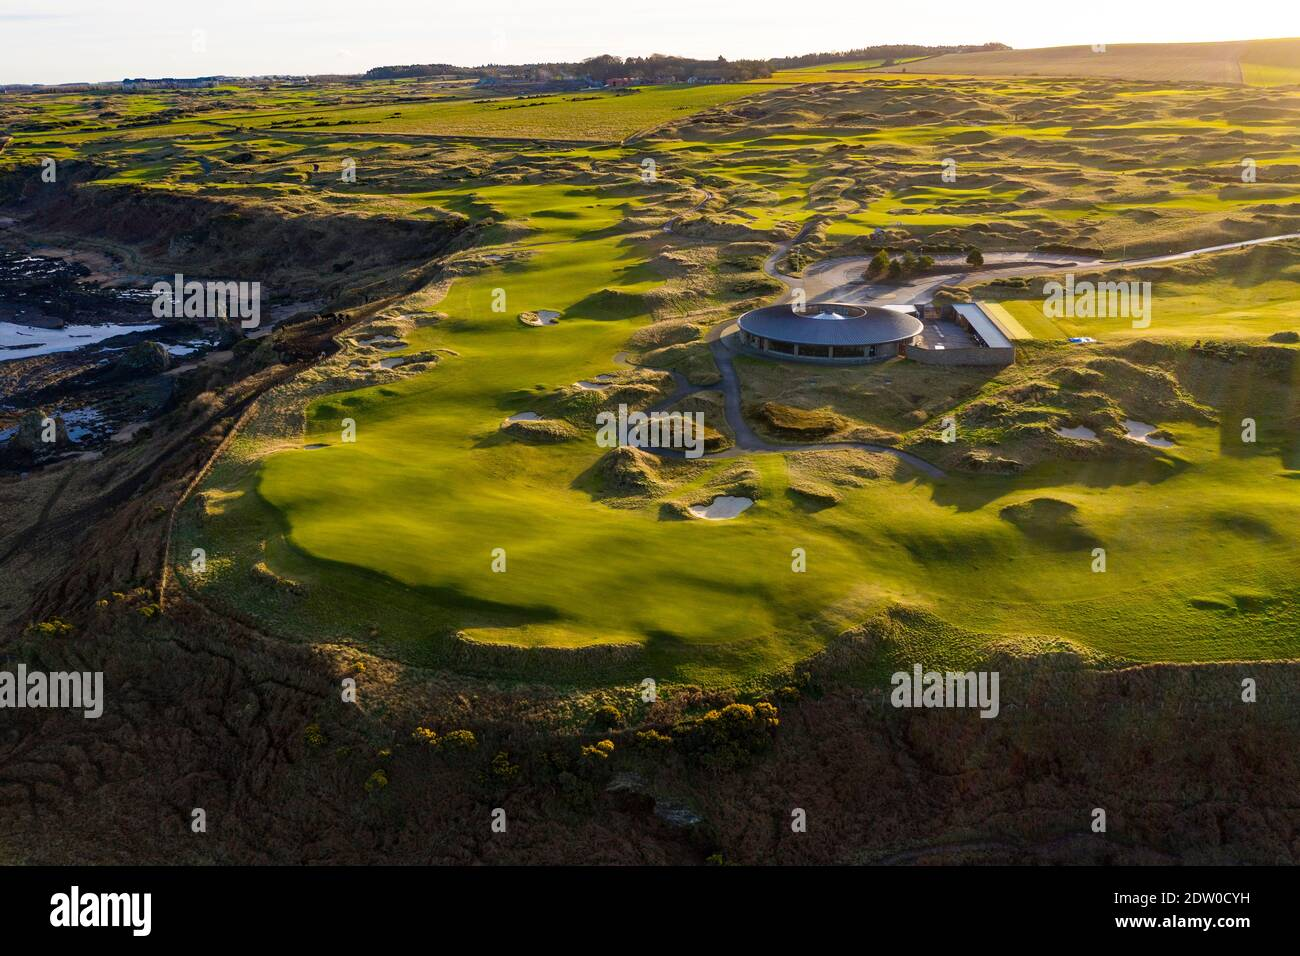 Aerial view of The Castle Course golf links outside St Andrews in Fife, Scotland, UK Stock Photo